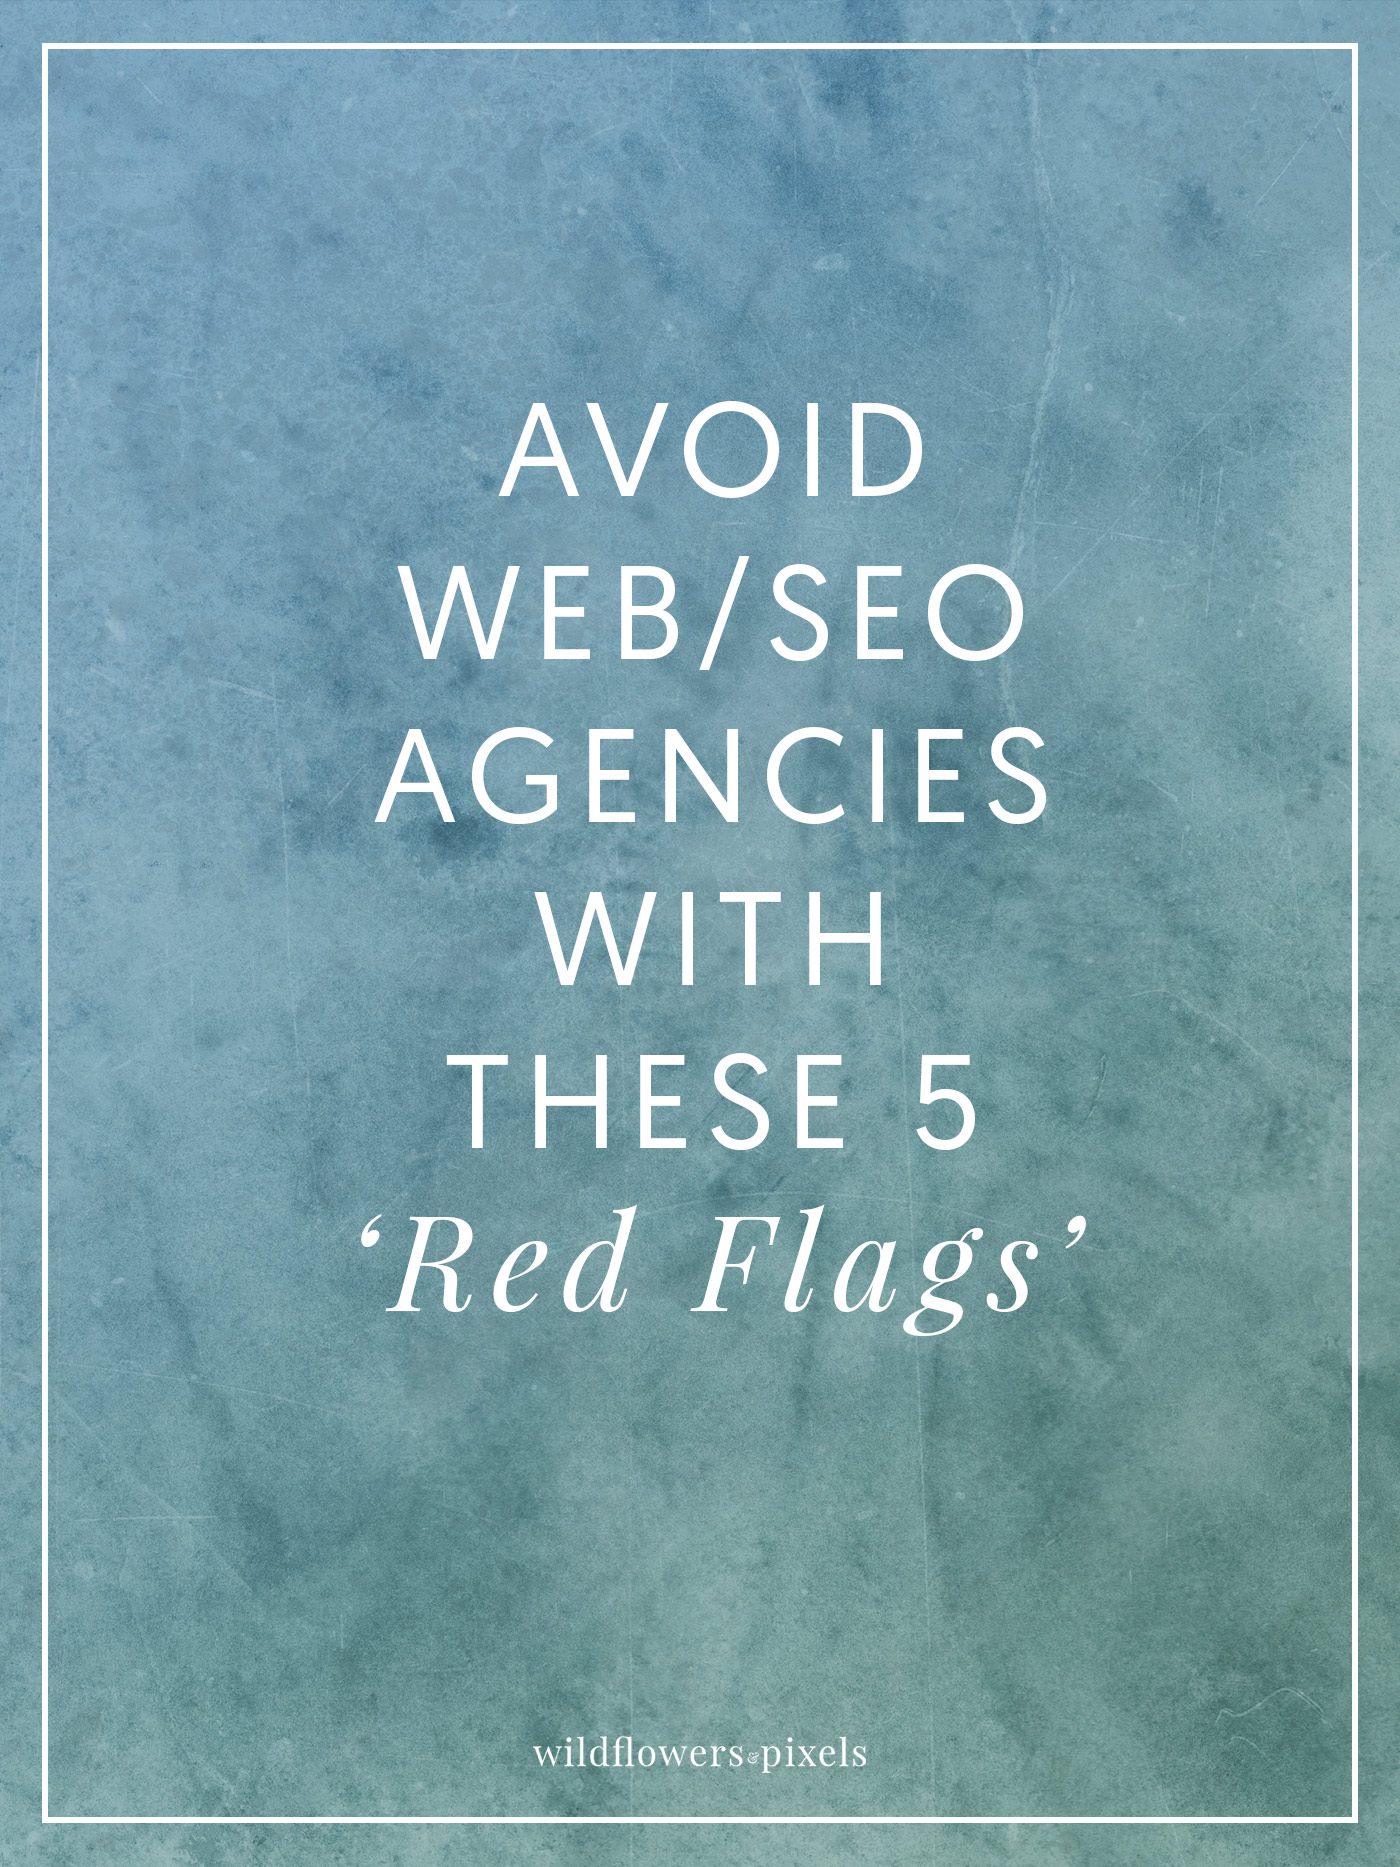 Avoid Web/SEO Agencies With These 5 'Red Flags' - Here are five 'red flags' to look out for when you're talking with any web design/ SEO agency.